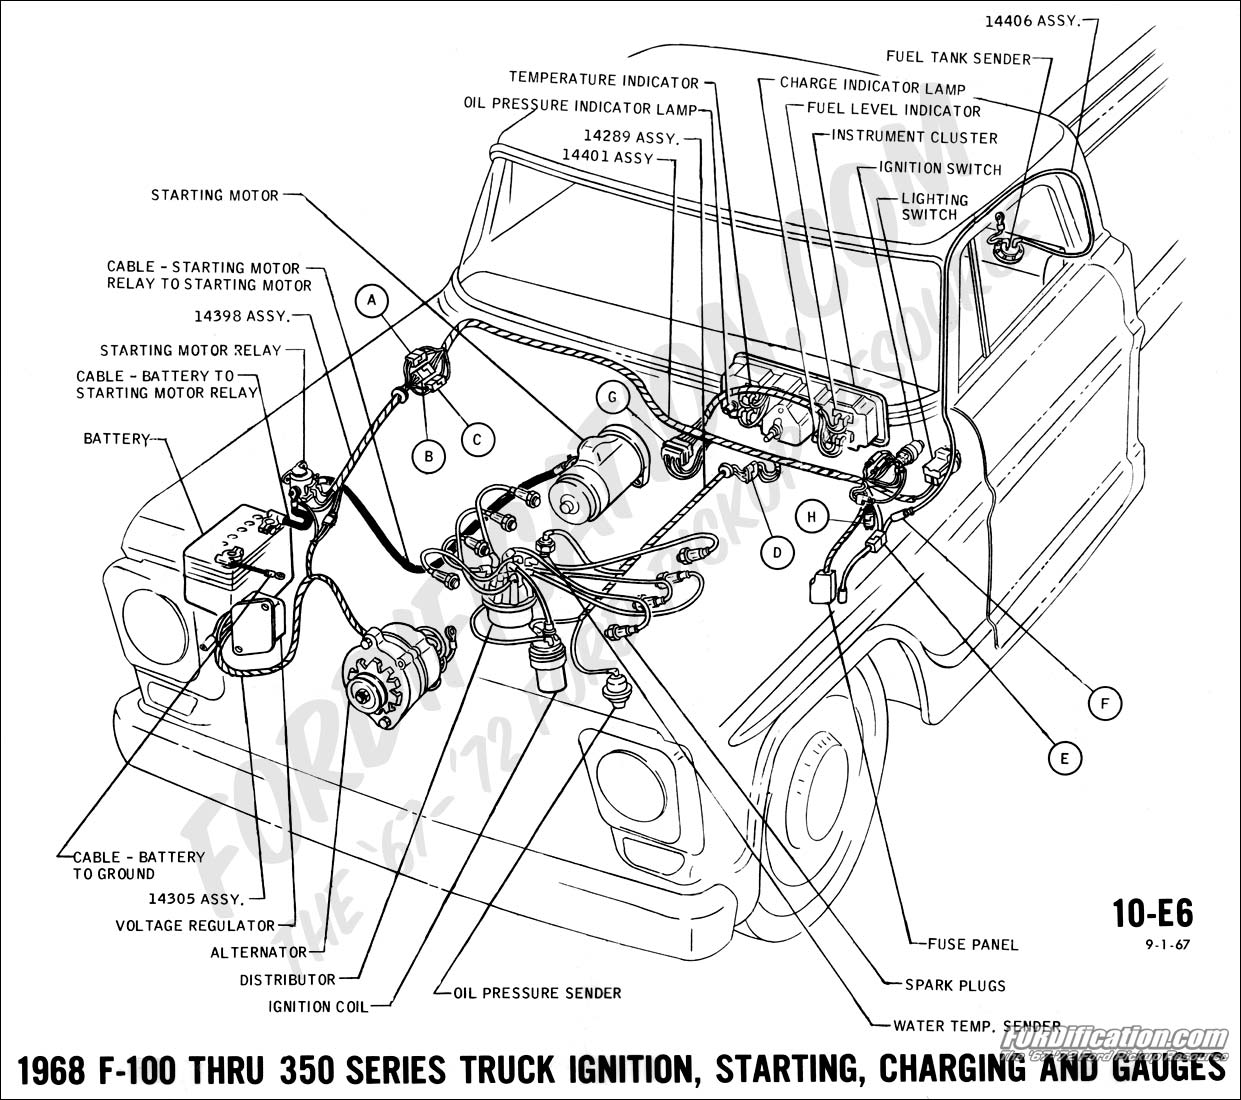 Propane Fuel System Diagram Moreover Alternator Wiring Diagram ...